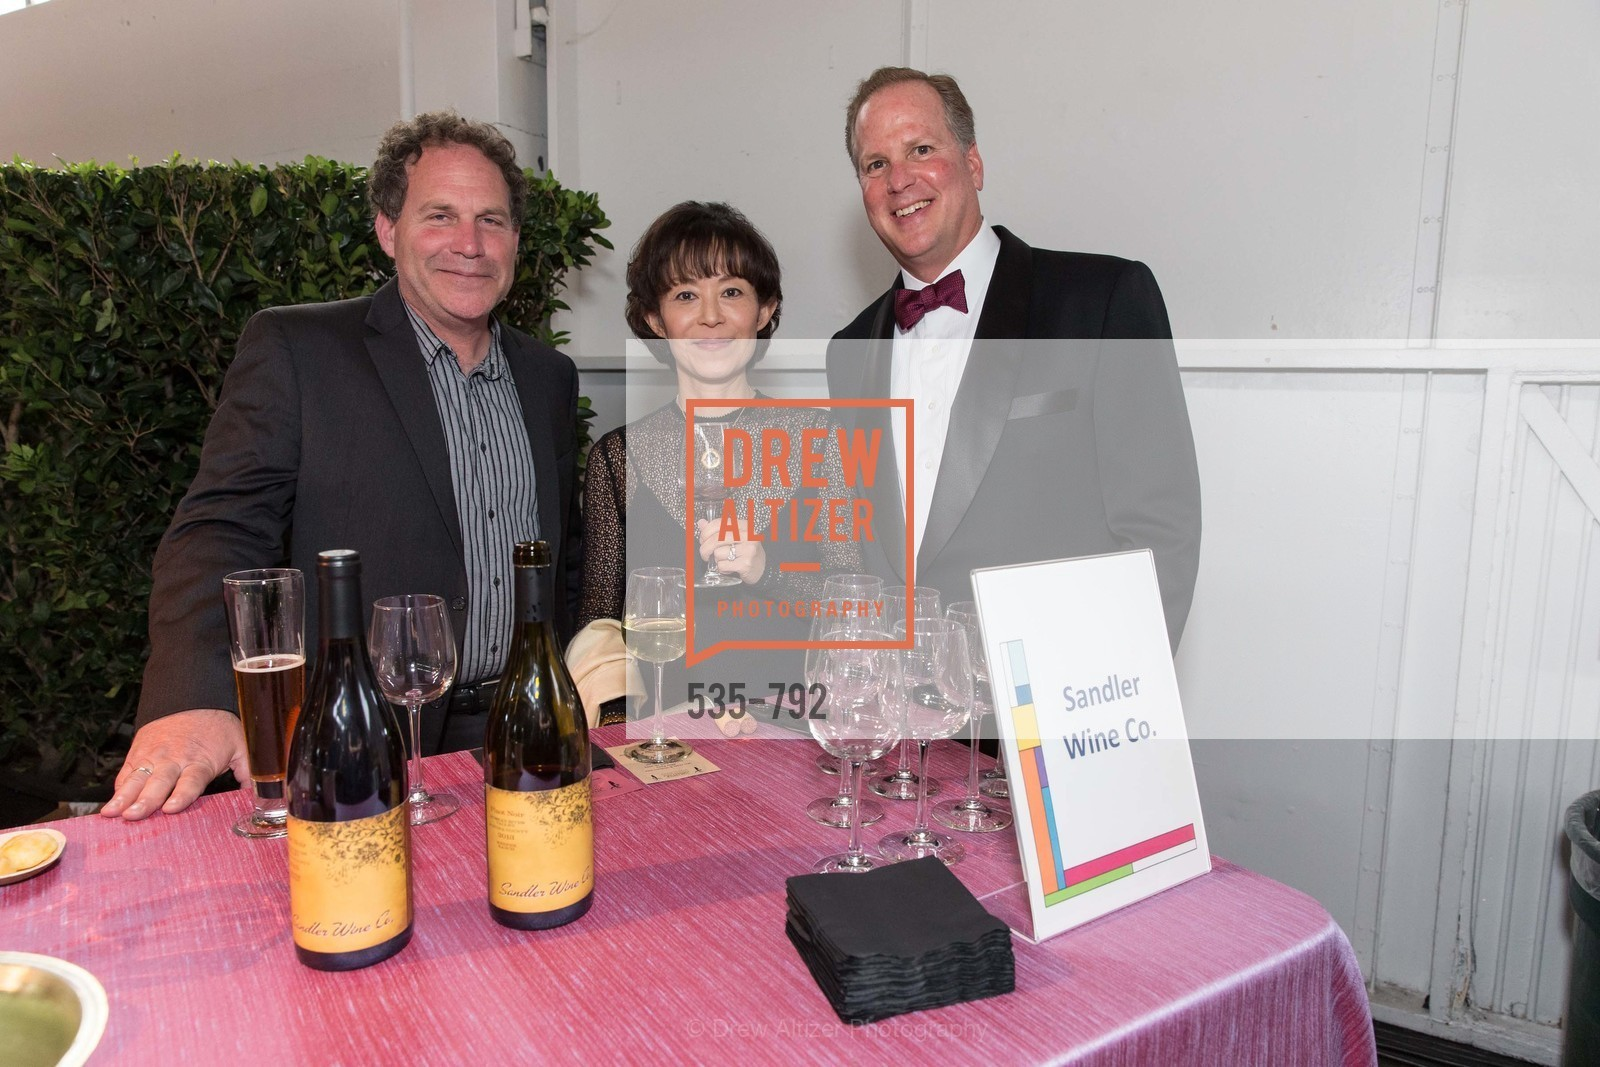 Sandler Wine Co, MEALS ON WHEELS OF SAN FRANCISCO'S 28th Annual Star Chefs and Vintners Gala, US, April 20th, 2015,Drew Altizer, Drew Altizer Photography, full-service agency, private events, San Francisco photographer, photographer california